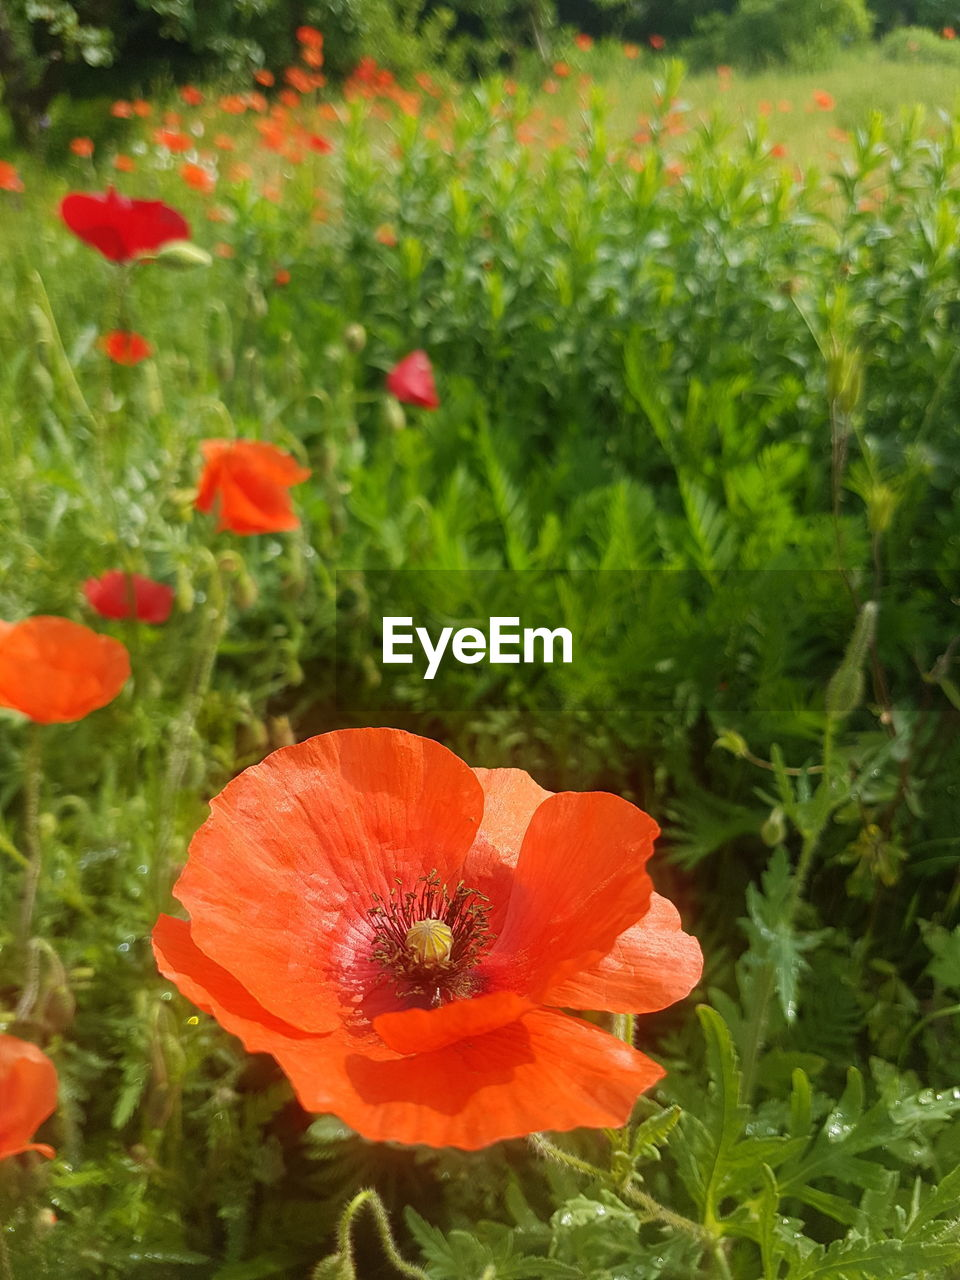 flower, petal, beauty in nature, orange color, nature, growth, plant, flower head, fragility, freshness, poppy, blooming, no people, outdoors, field, day, hibiscus, close-up